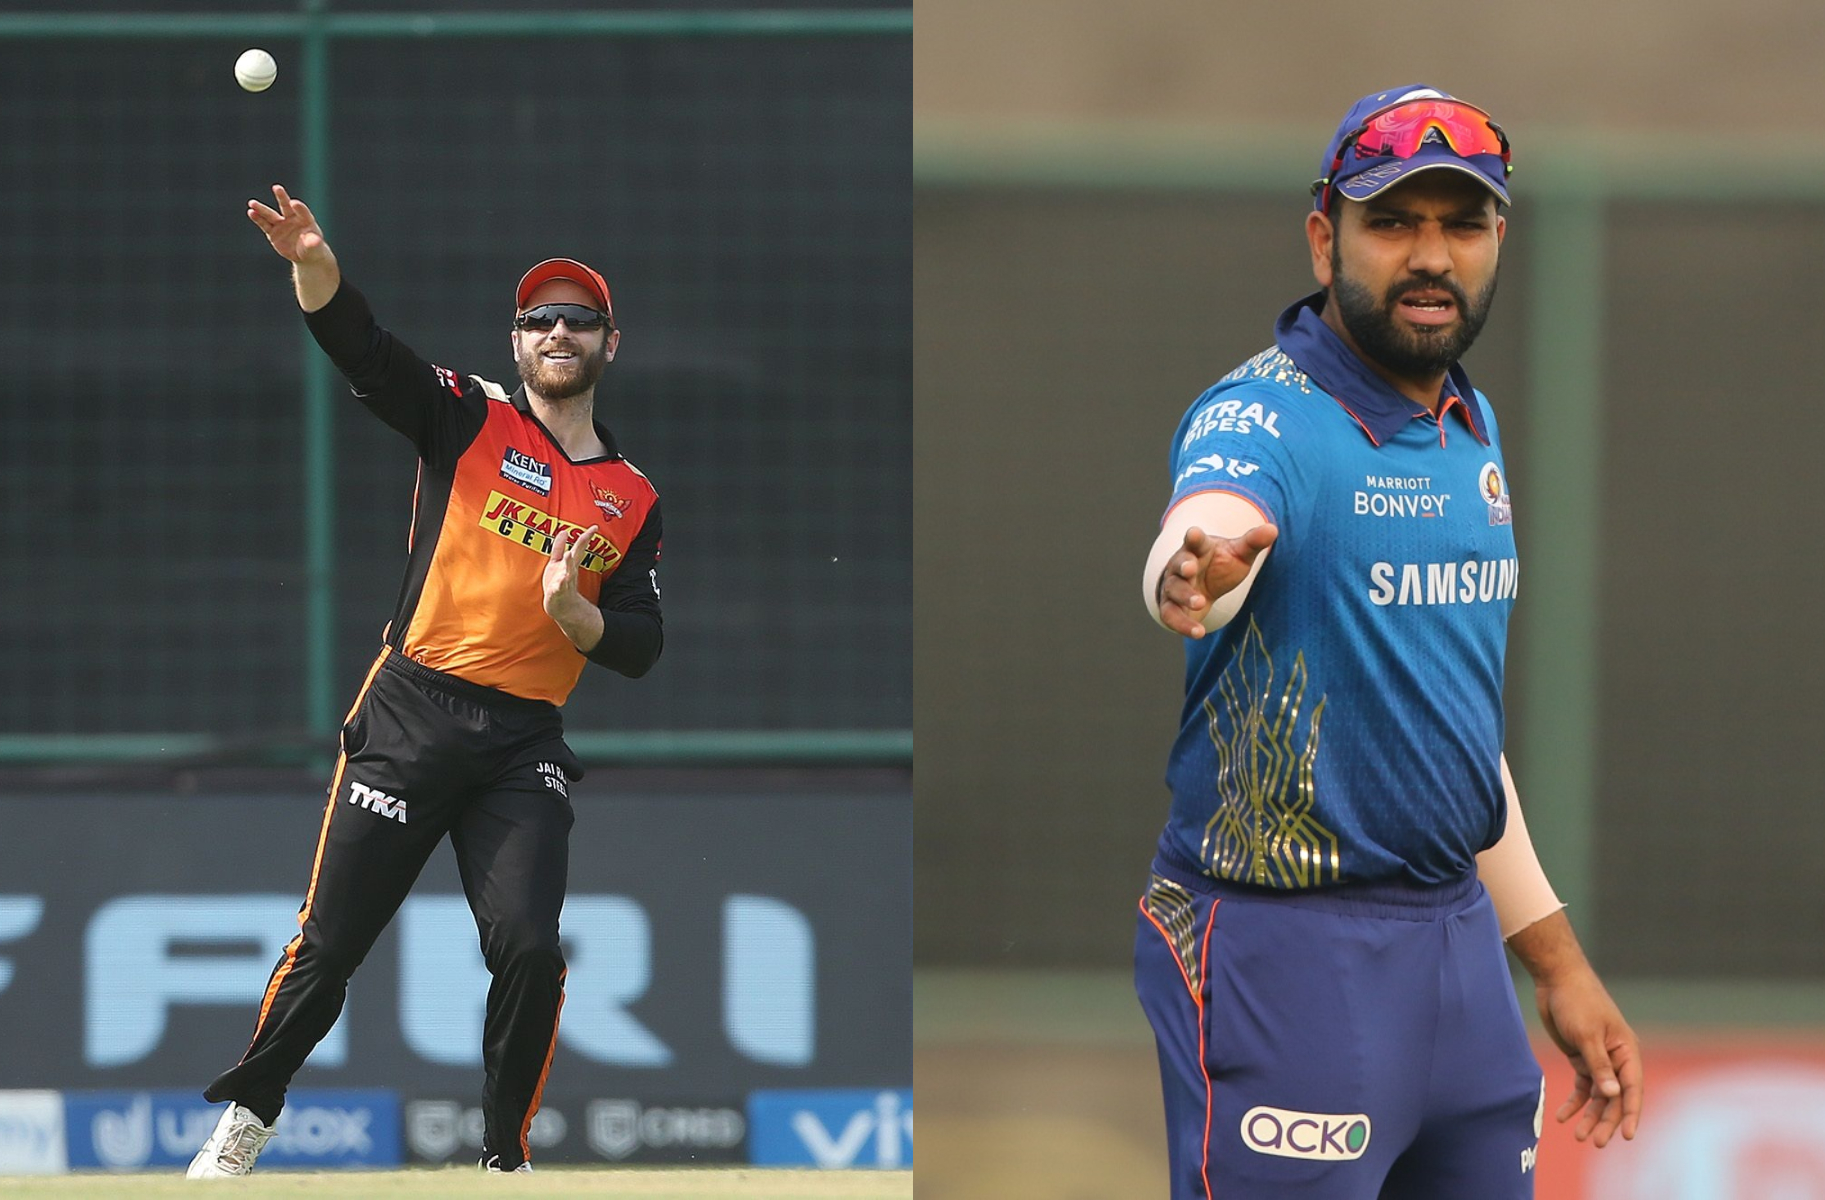 SRH have won just one match out of 7, while MI have won 4 out of 7 | BCCI-IPL